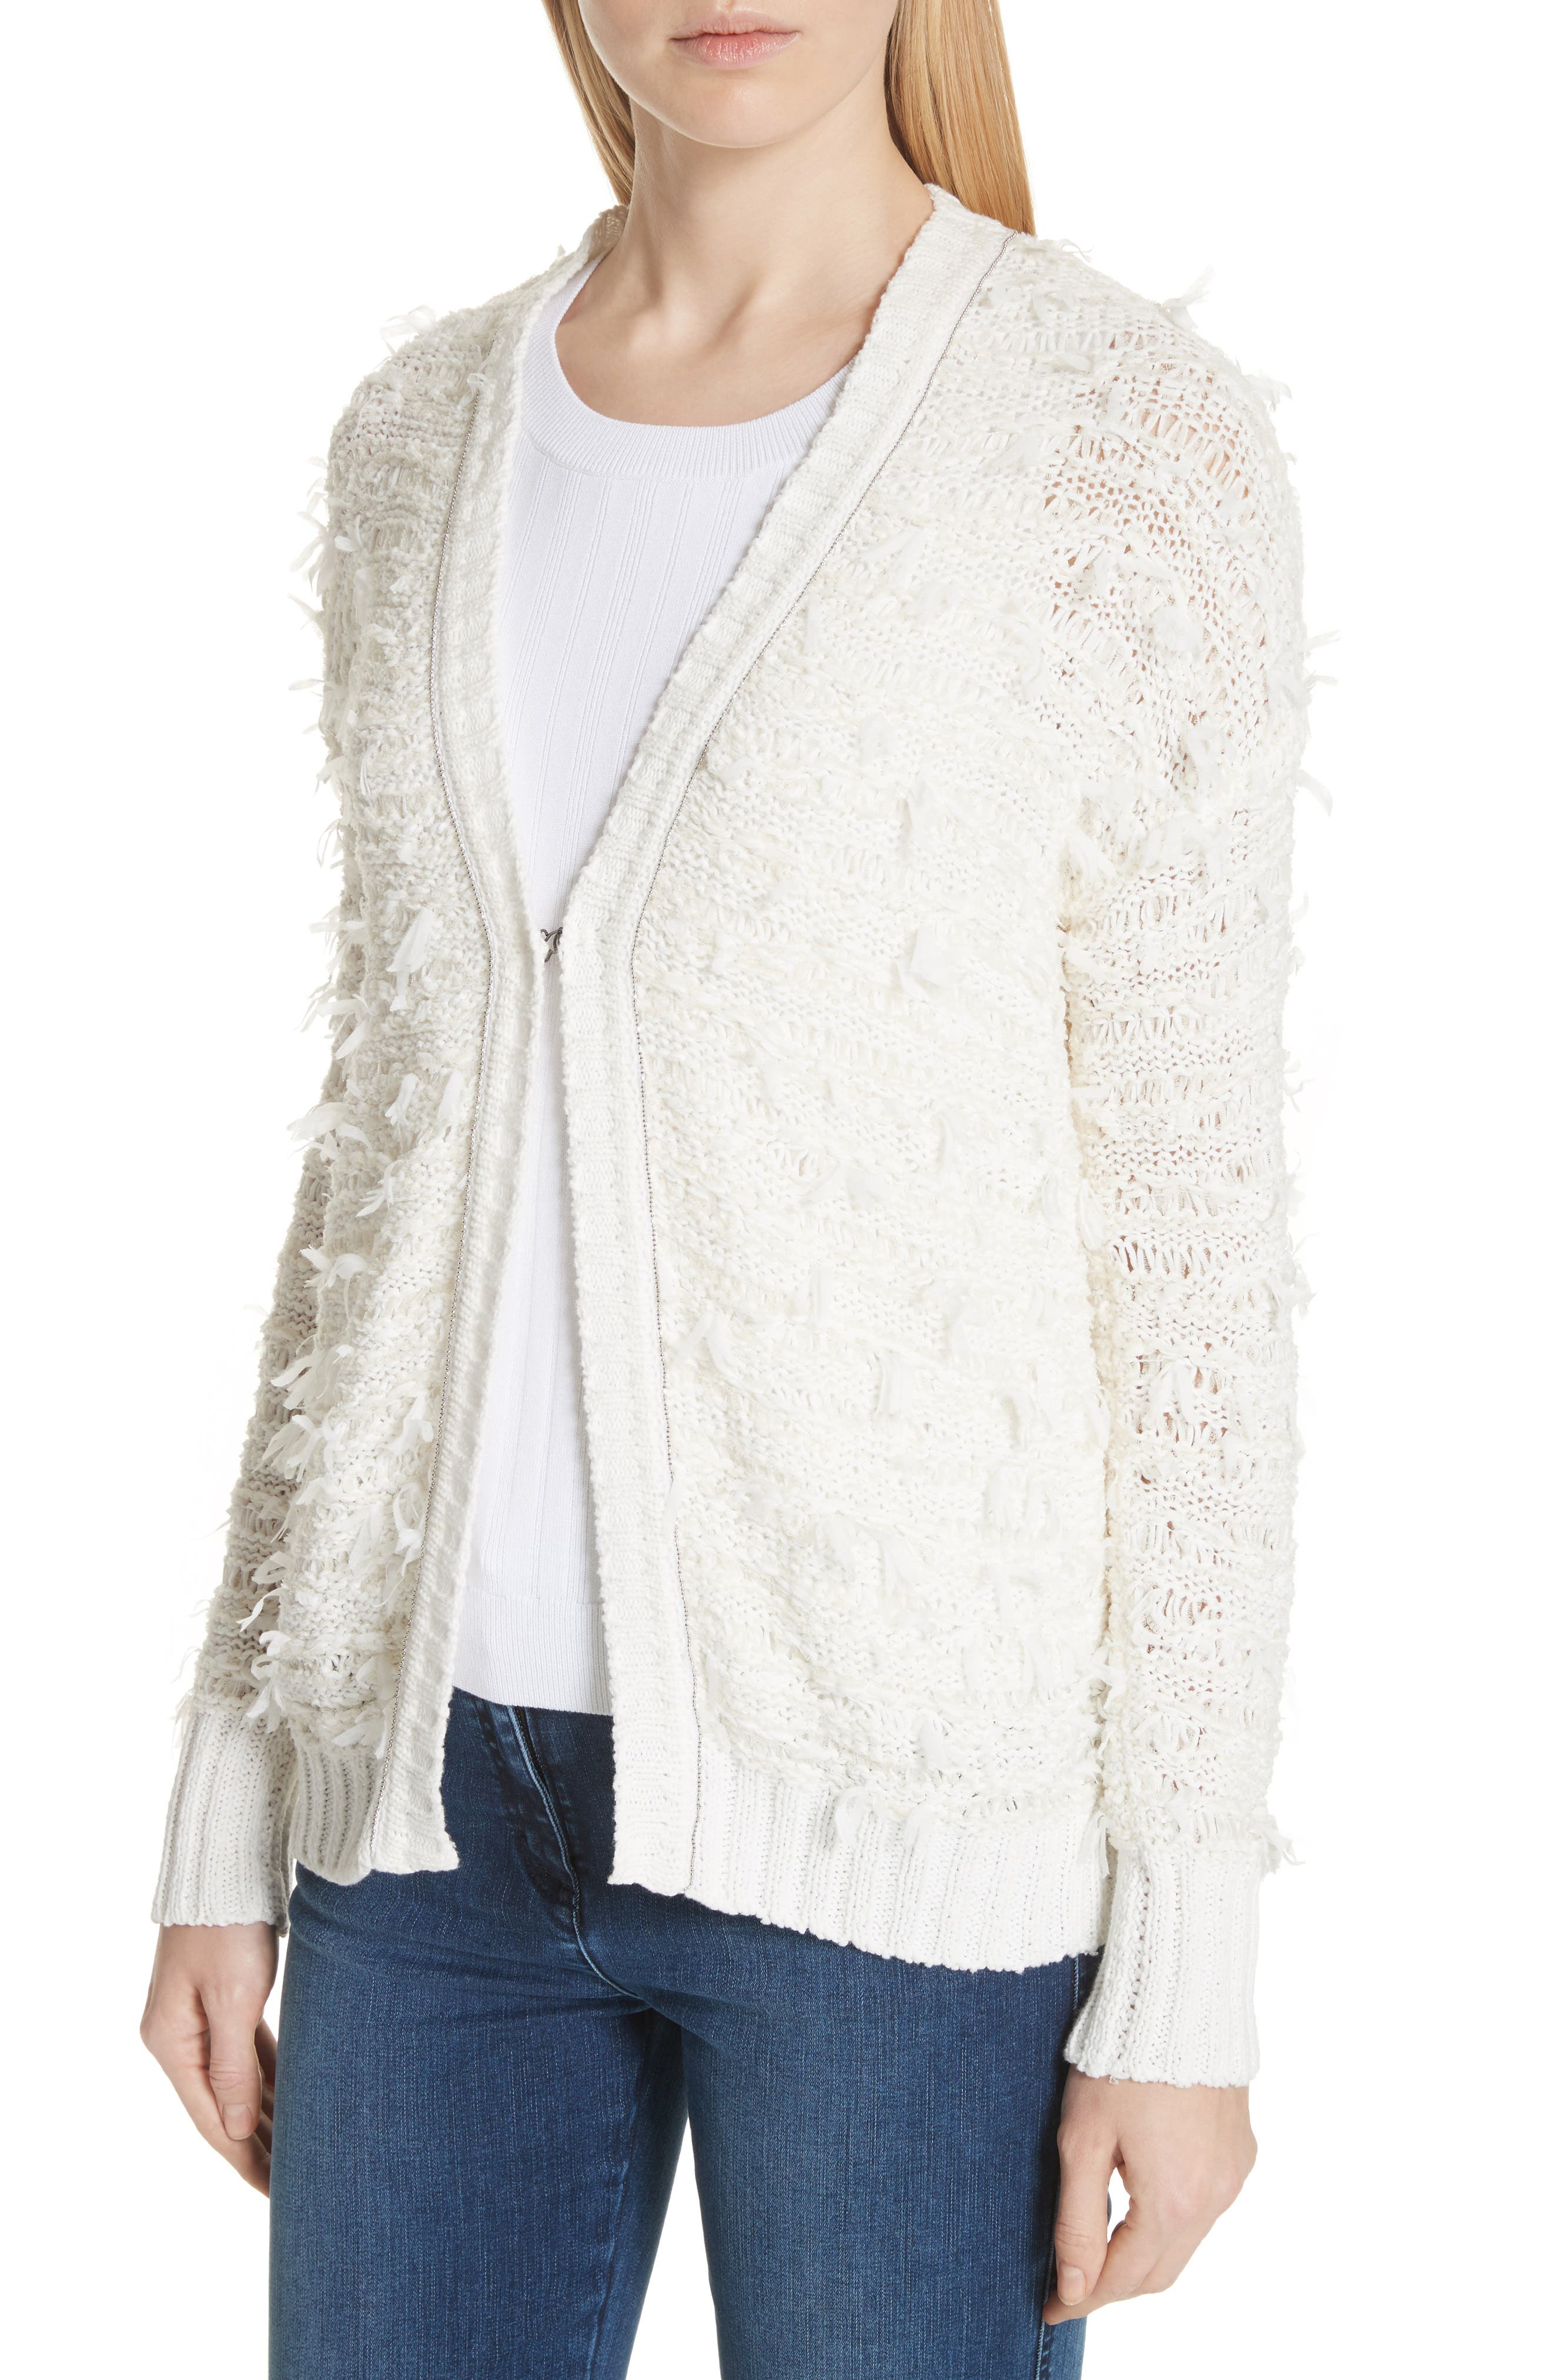 Tufted Knit Cardigan,                             Alternate thumbnail 4, color,                             900